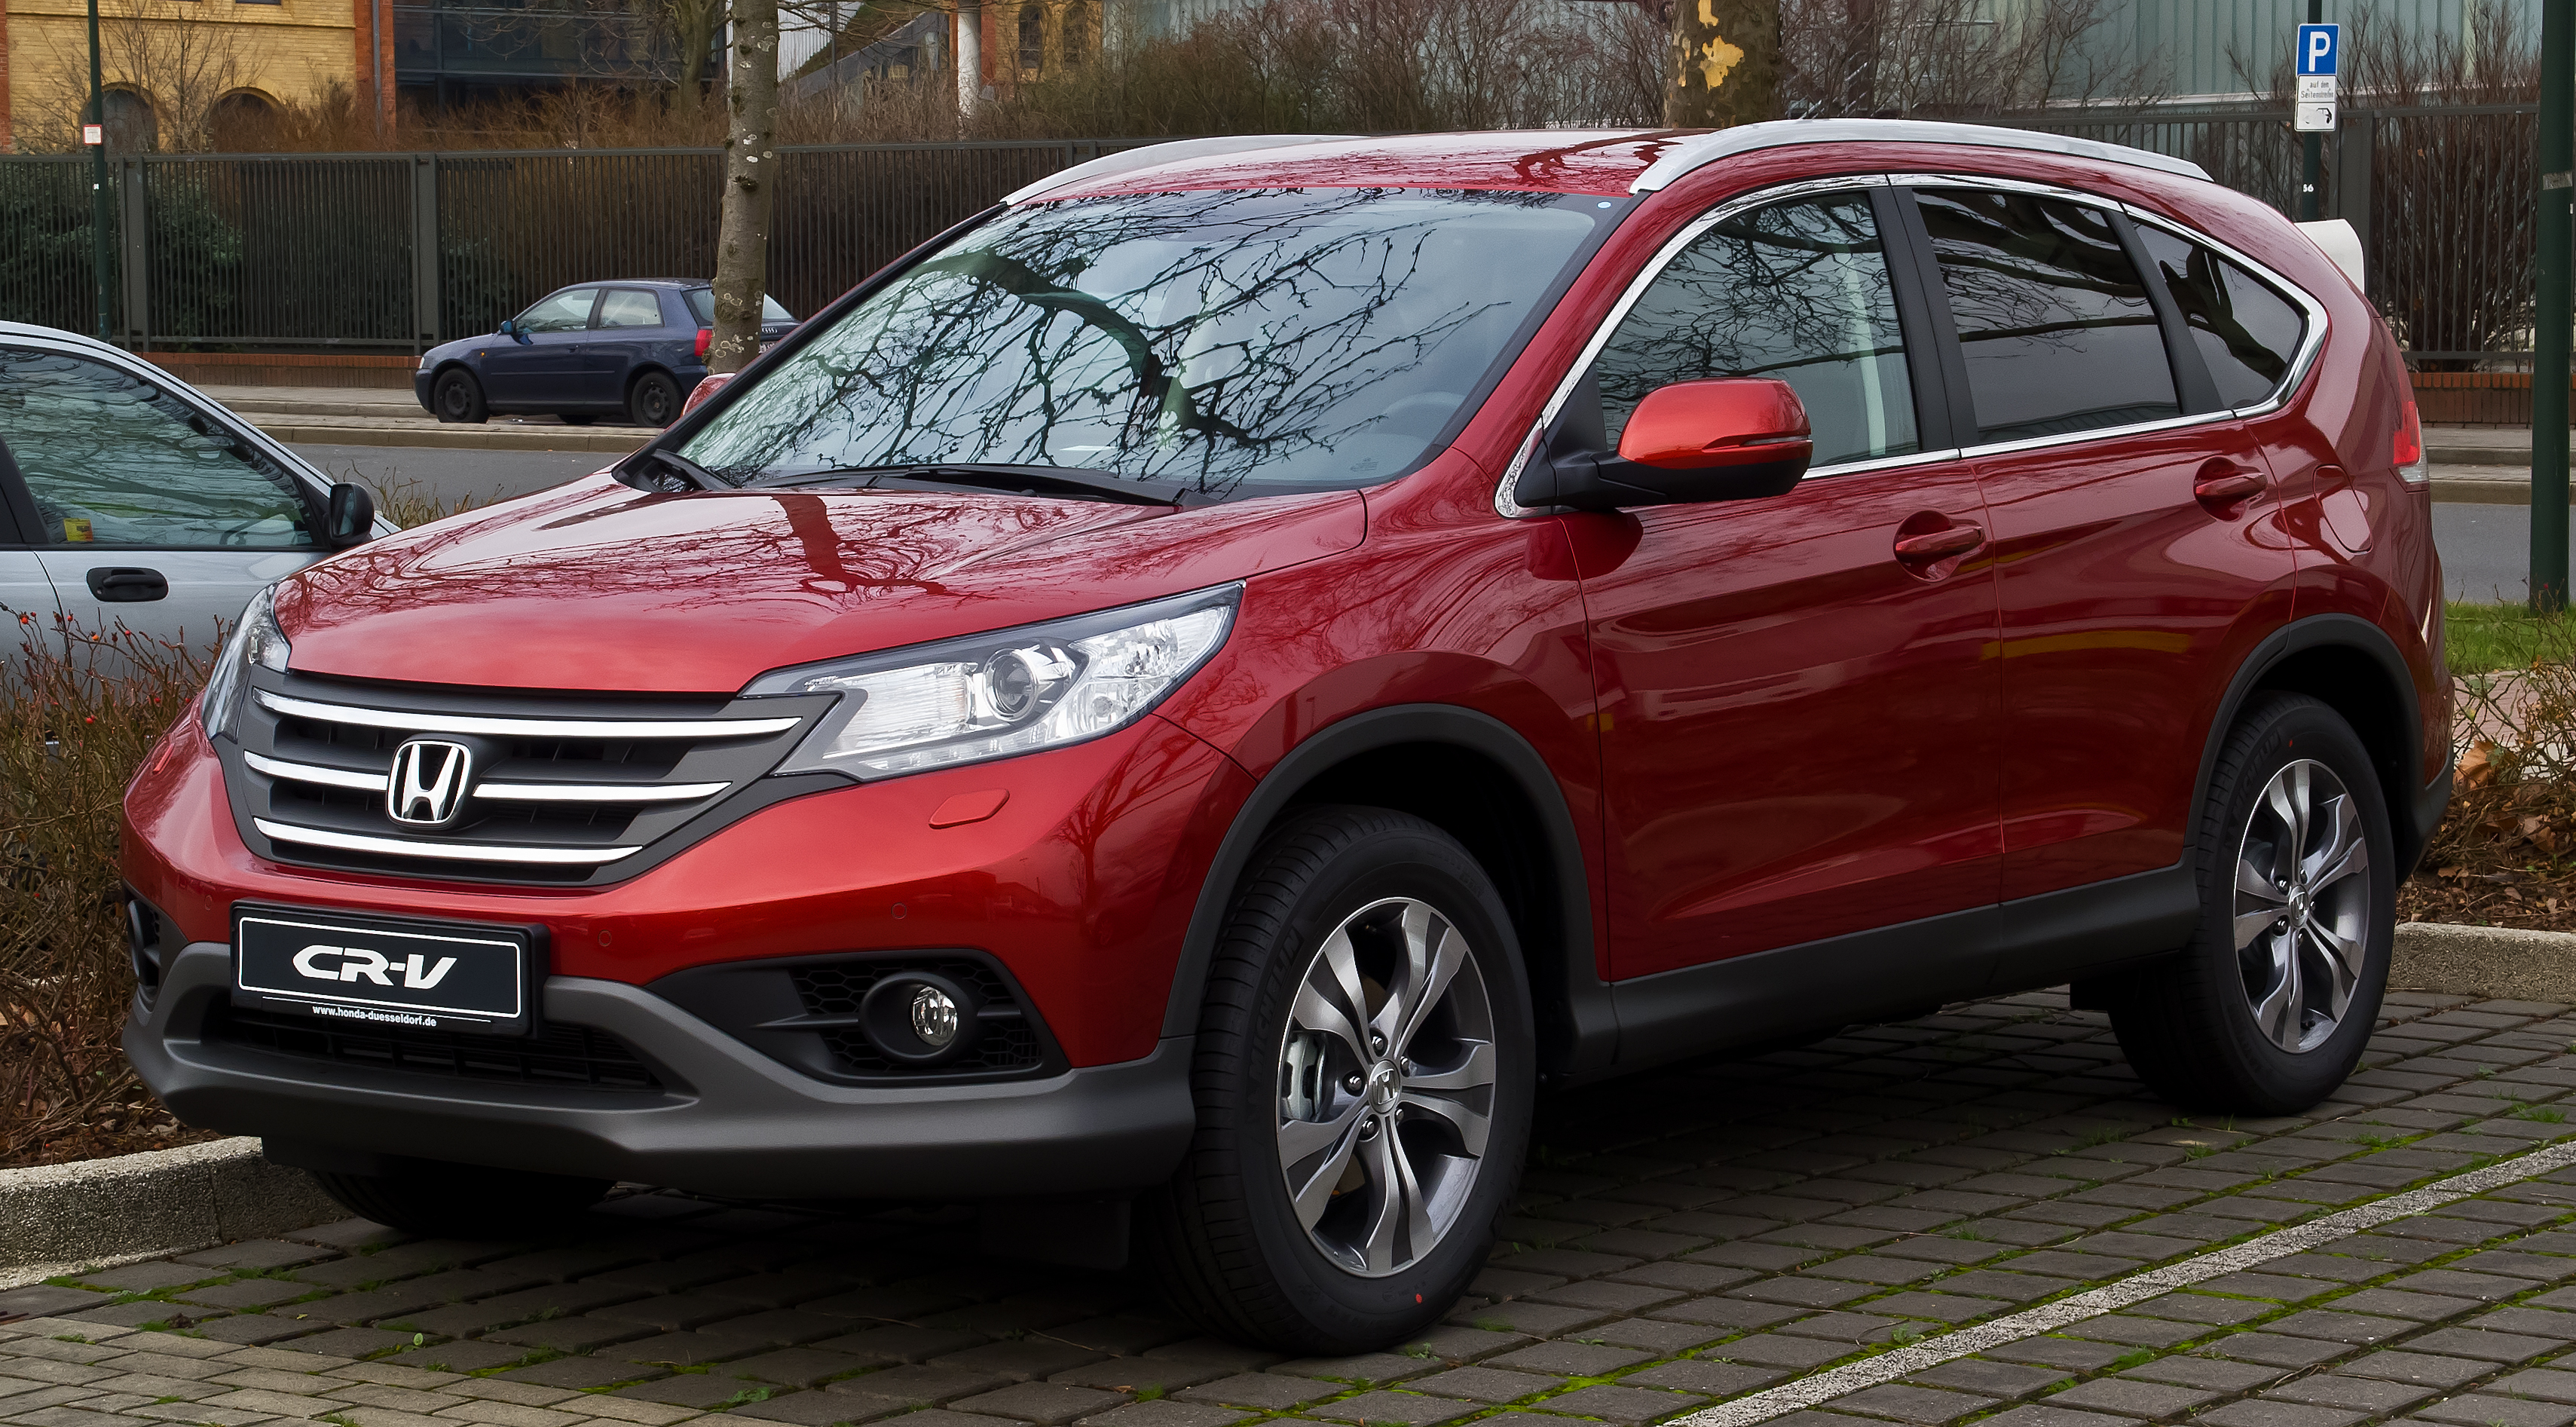 Honda Cr V Used Car Price In Malaysia